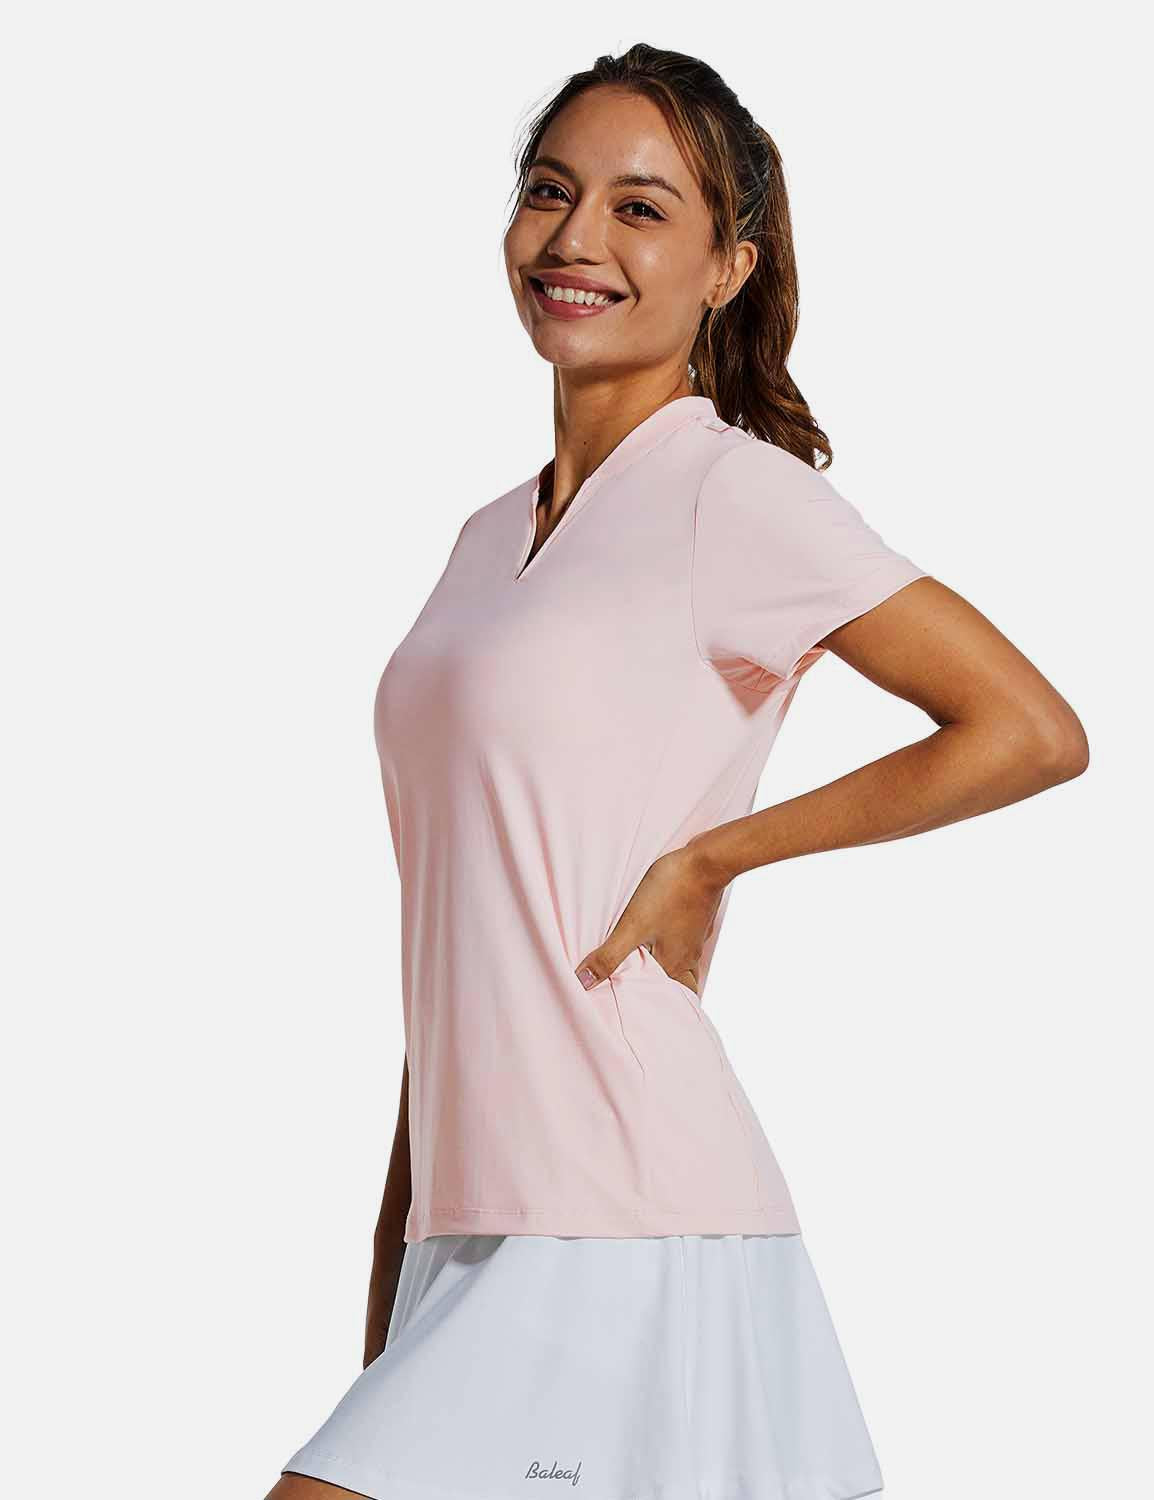 Baleaf Womens UPF50+ Short Sleeved Collarless V Neck Shirts Pink side